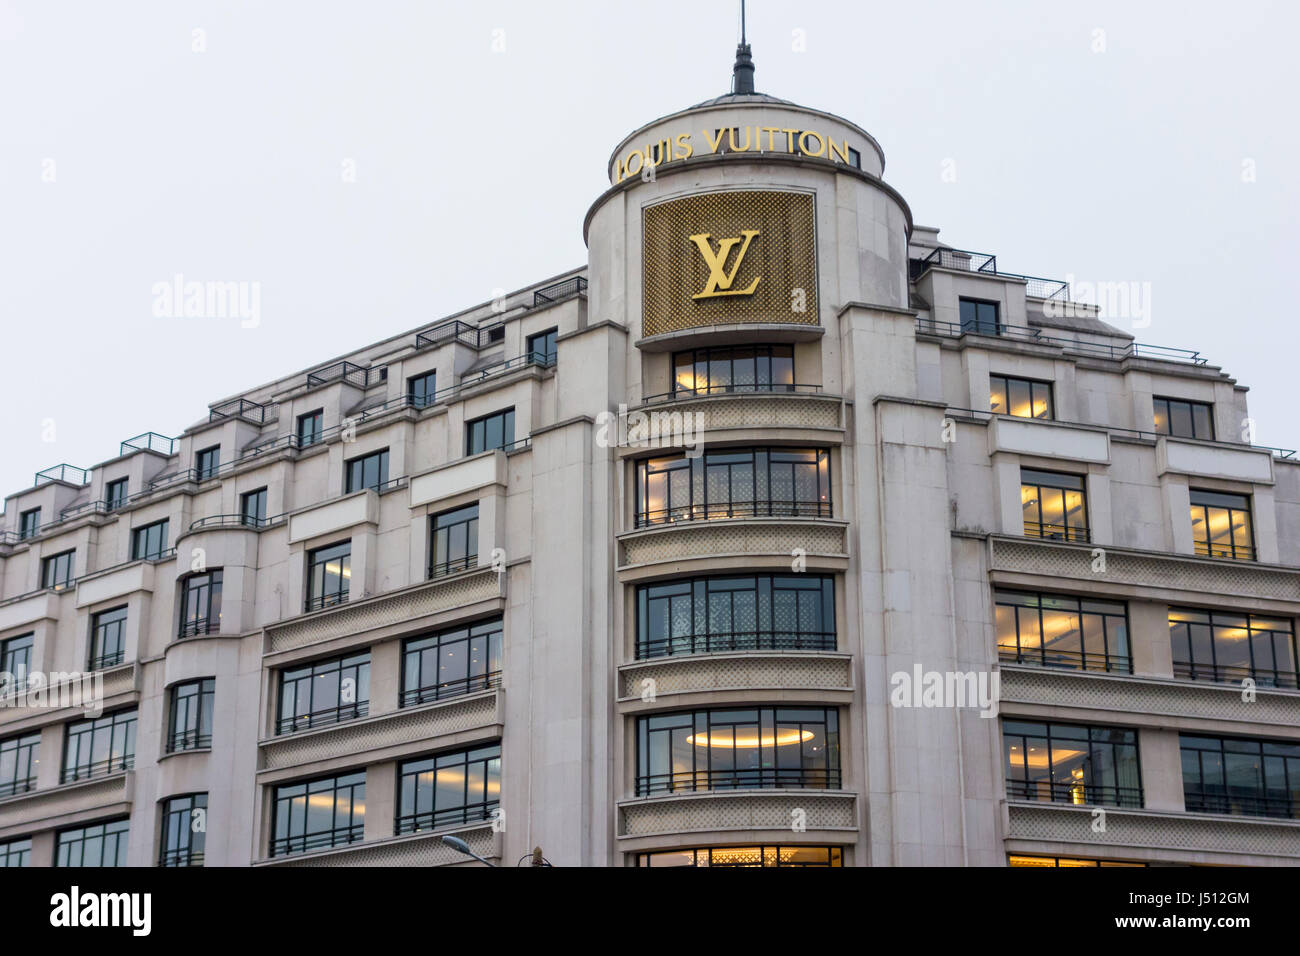 Louis Vuitton flagship store, 101 avenue Champs-Elysées, Paris, France - Stock Image